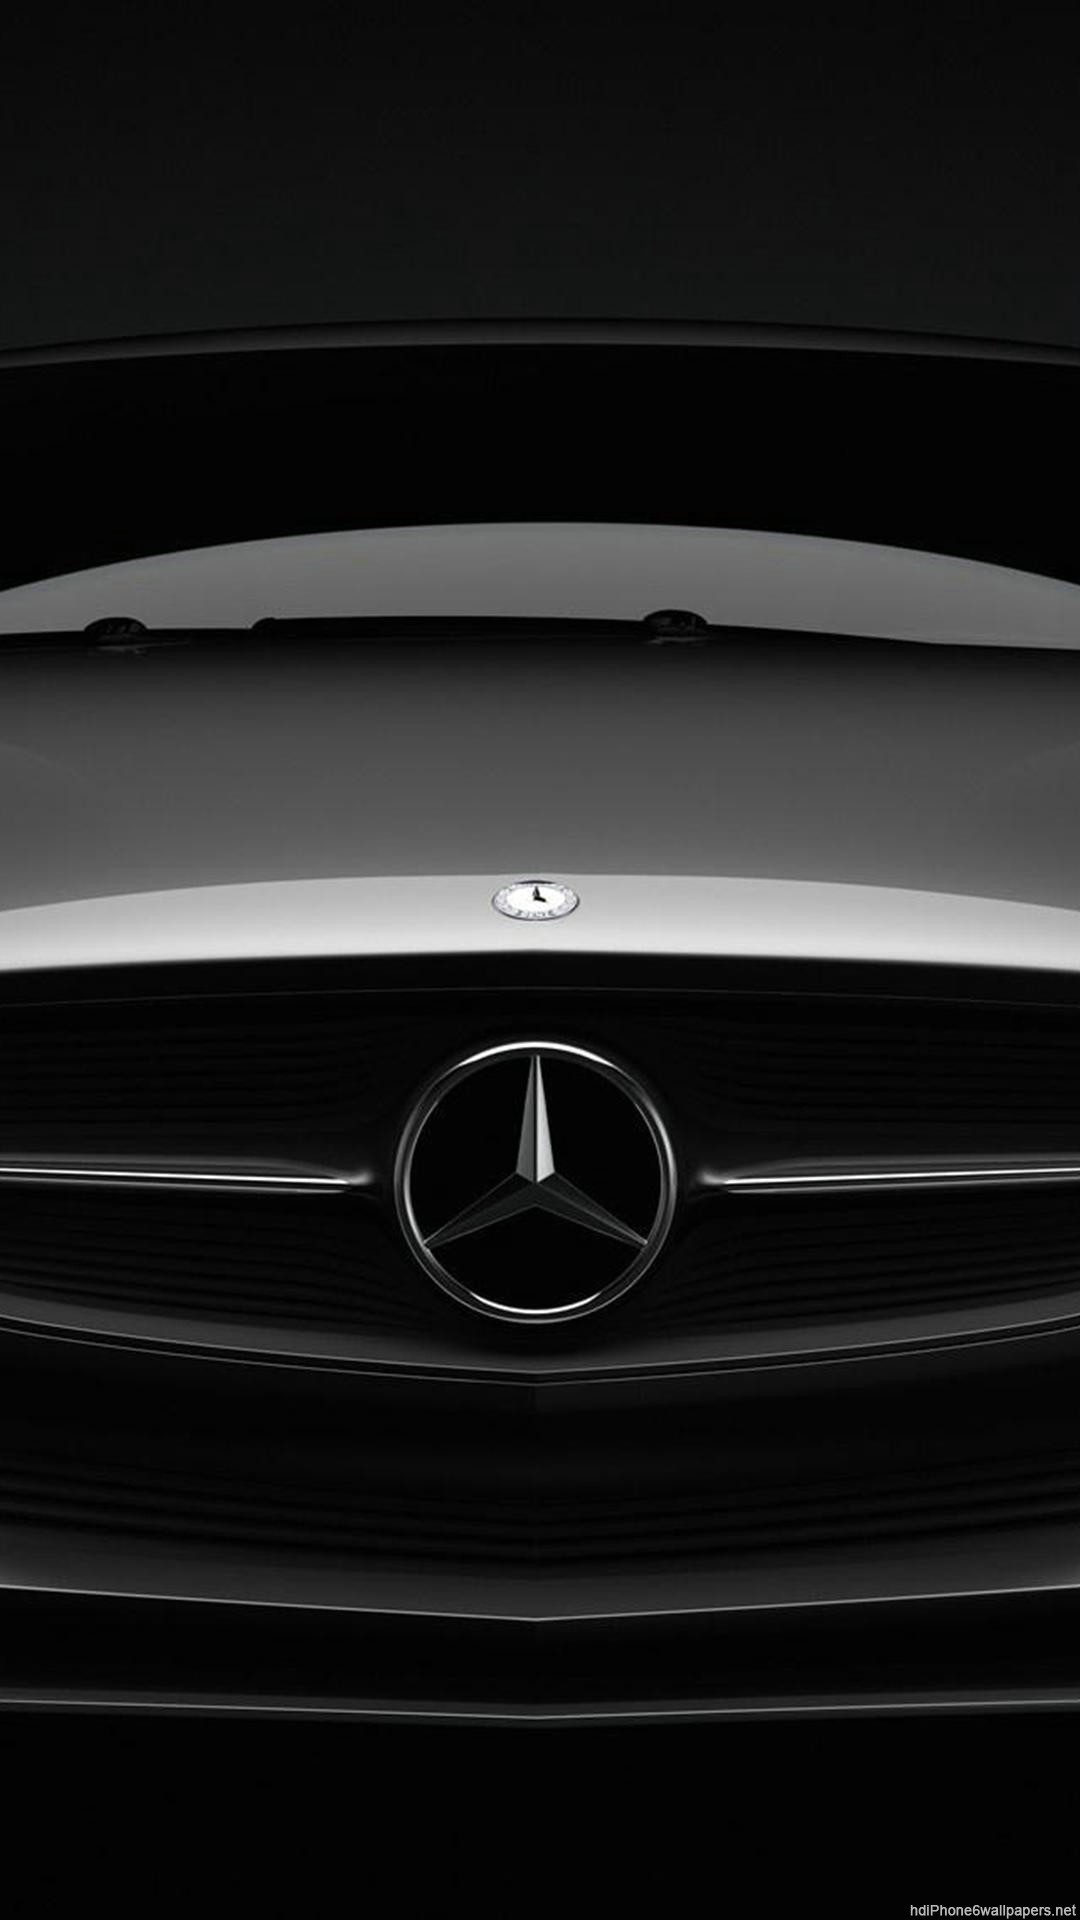 Mercedes Car Iphone 6 Wallpapers Hd Mercedes Benz Logo Wallpaper Mobile 1080x1920 Download Hd Wallpaper Wallpapertip